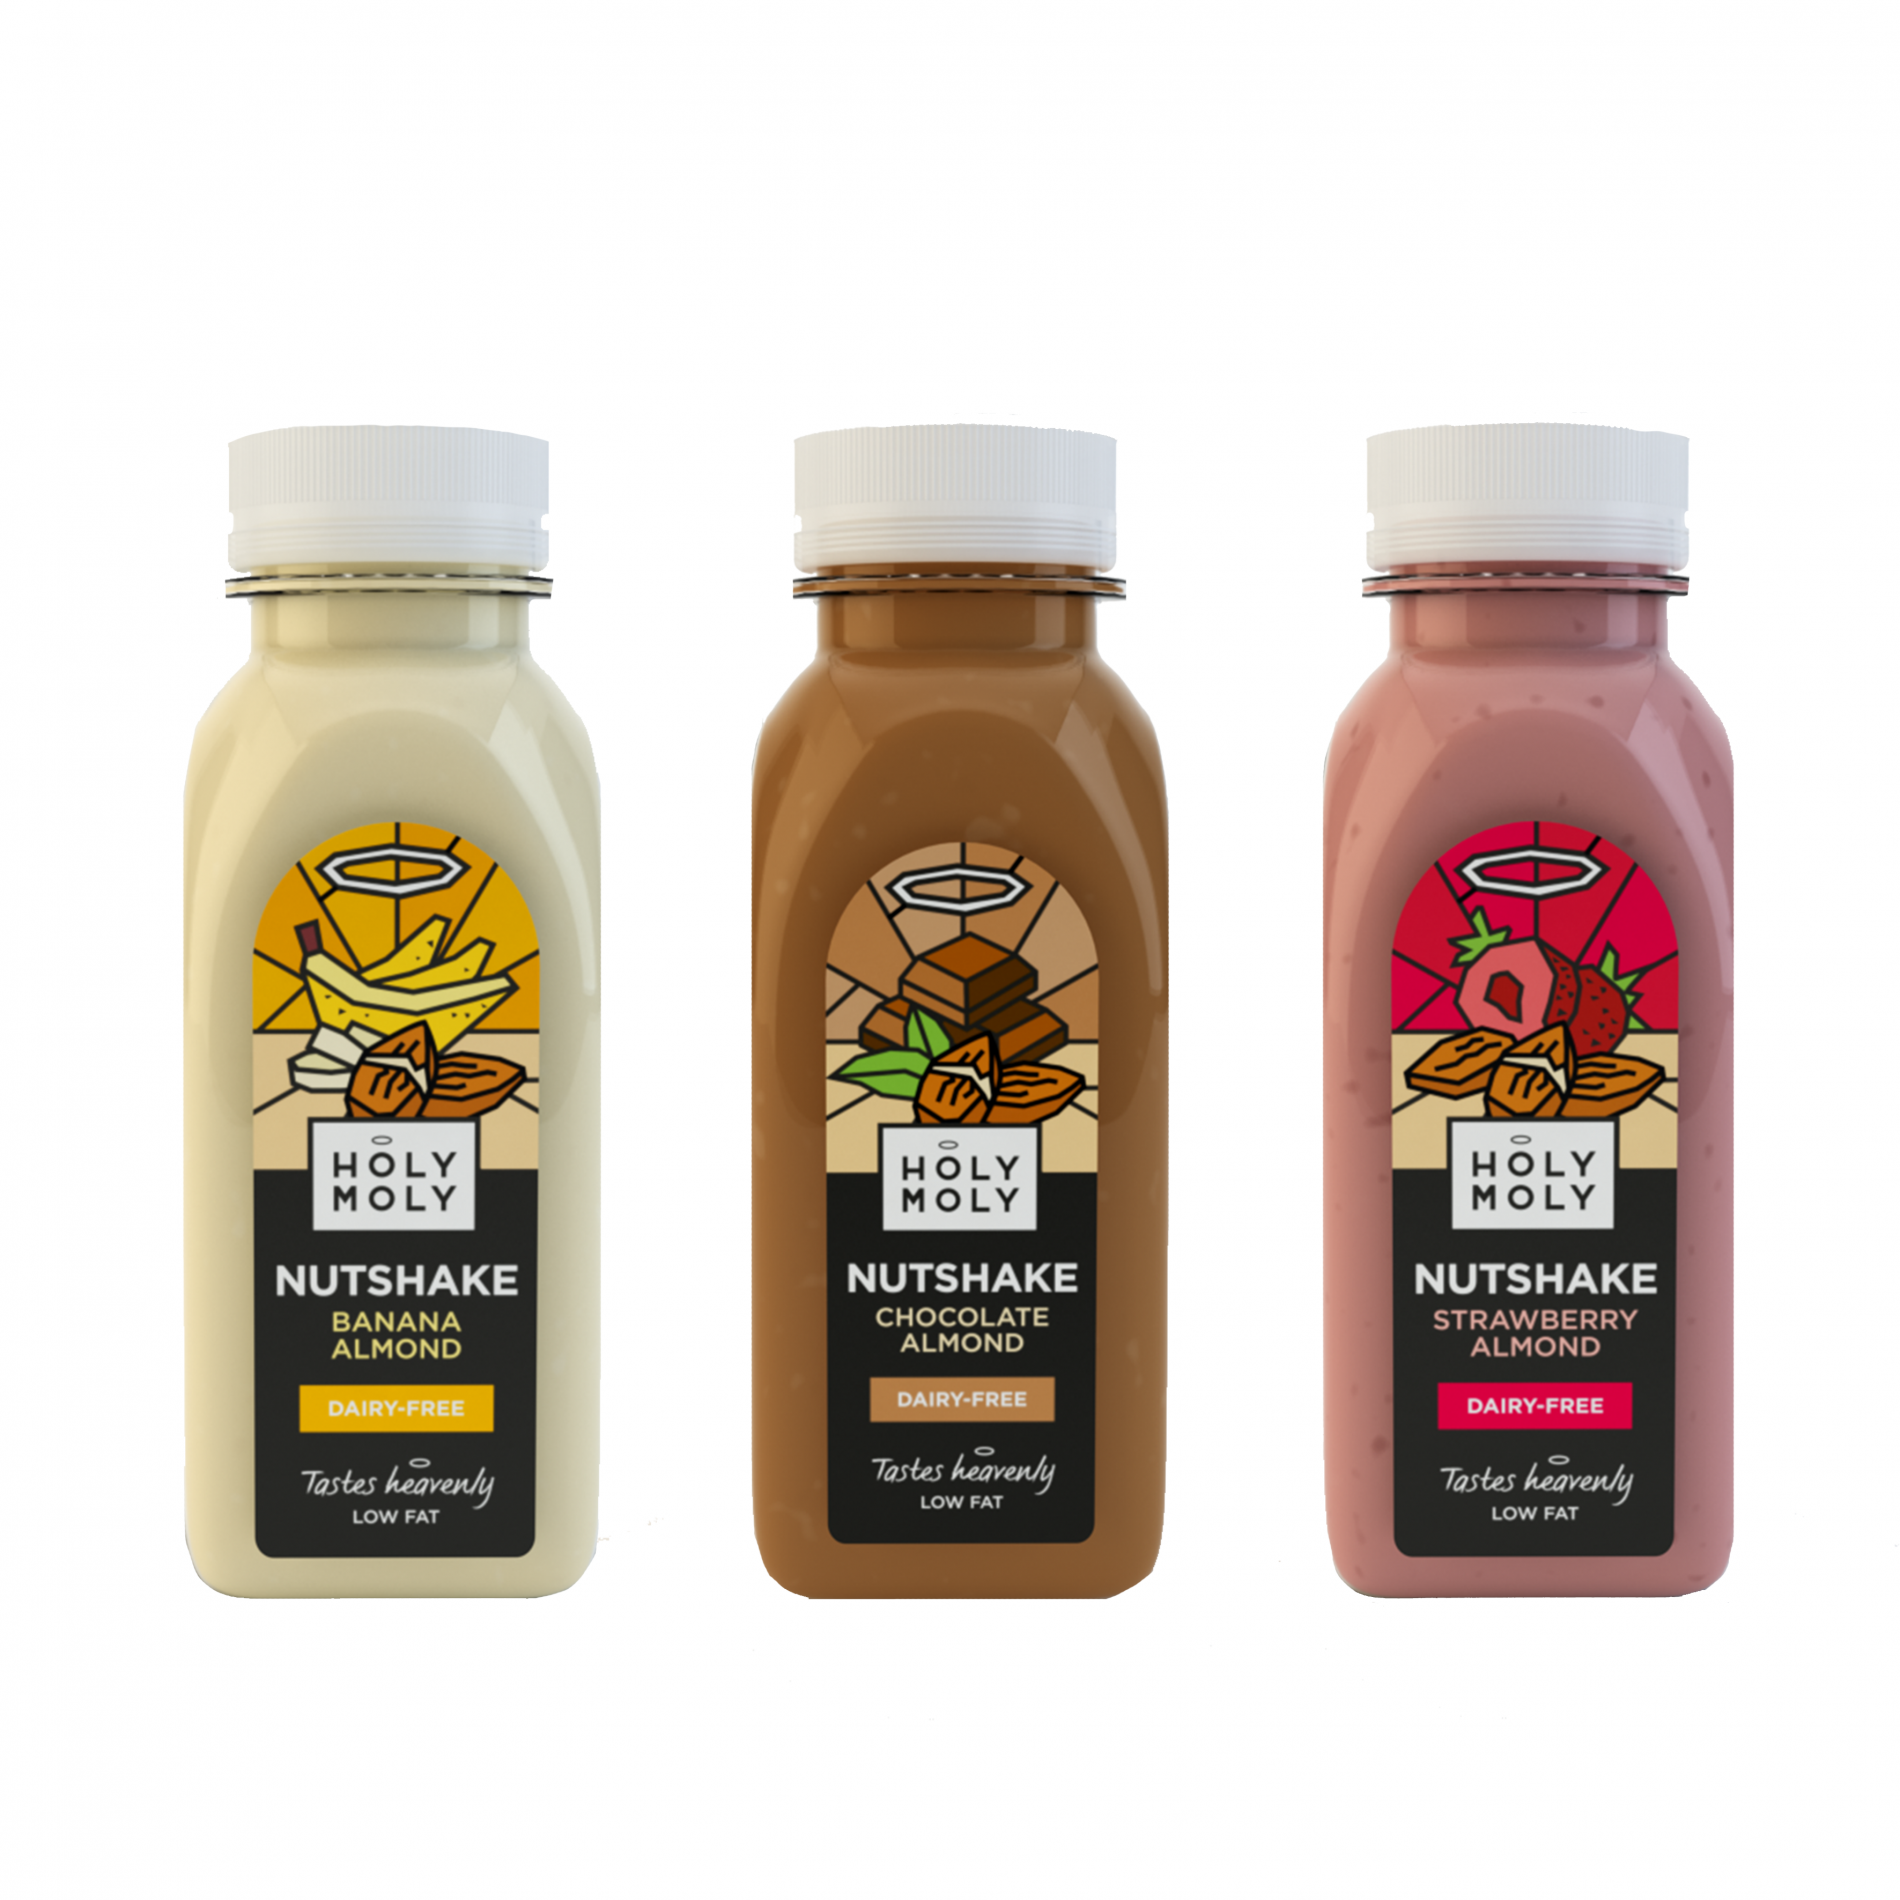 Holy Moly Launches Range of Cold-Pressed Nutshakes